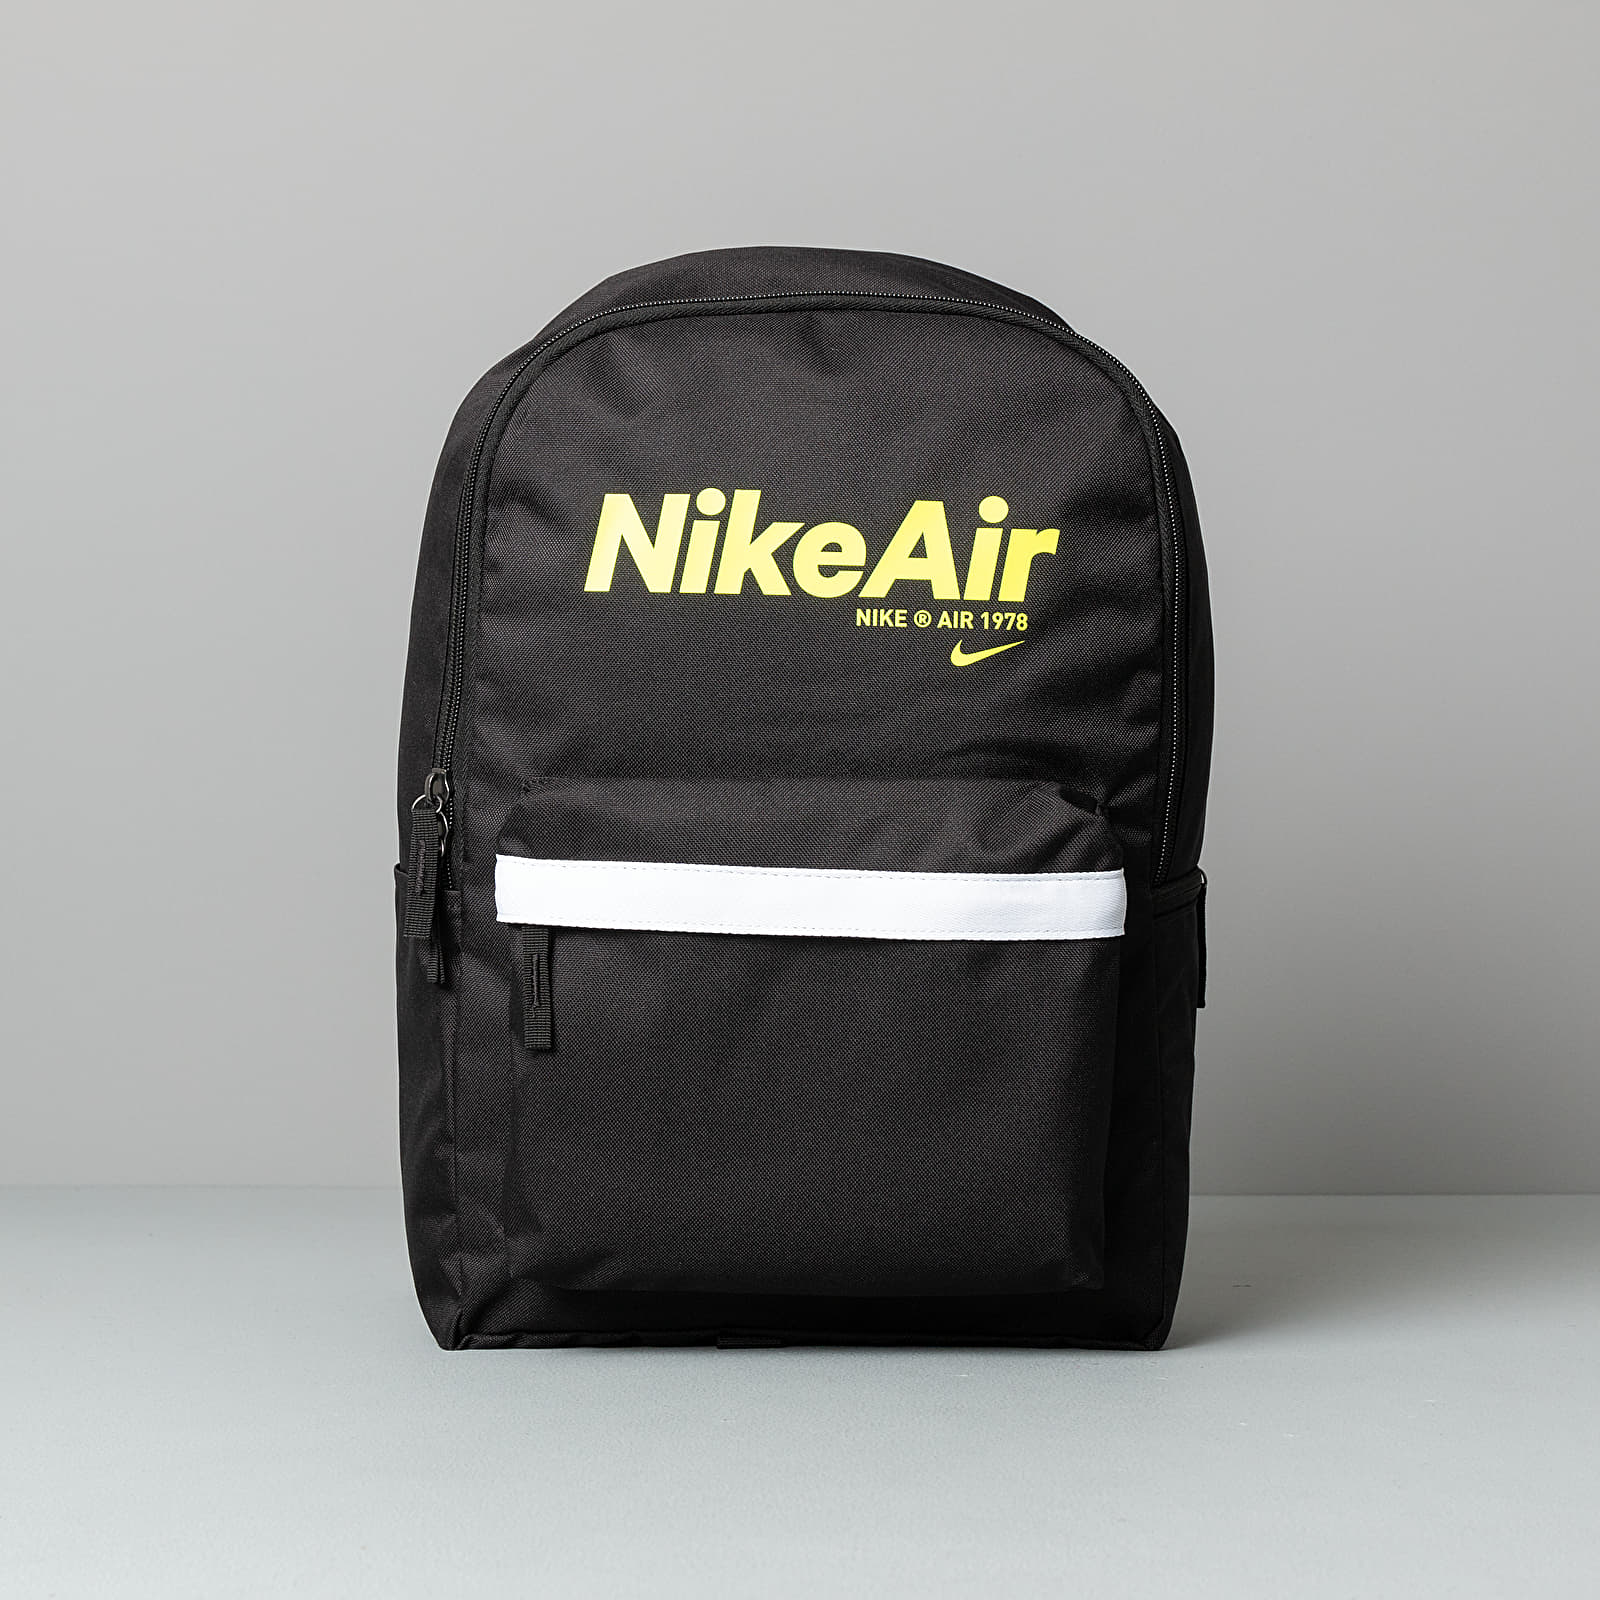 Rucksäcke Nike Heritage Backpack - 2.0 Nike Air Black/ Black/ VoLight